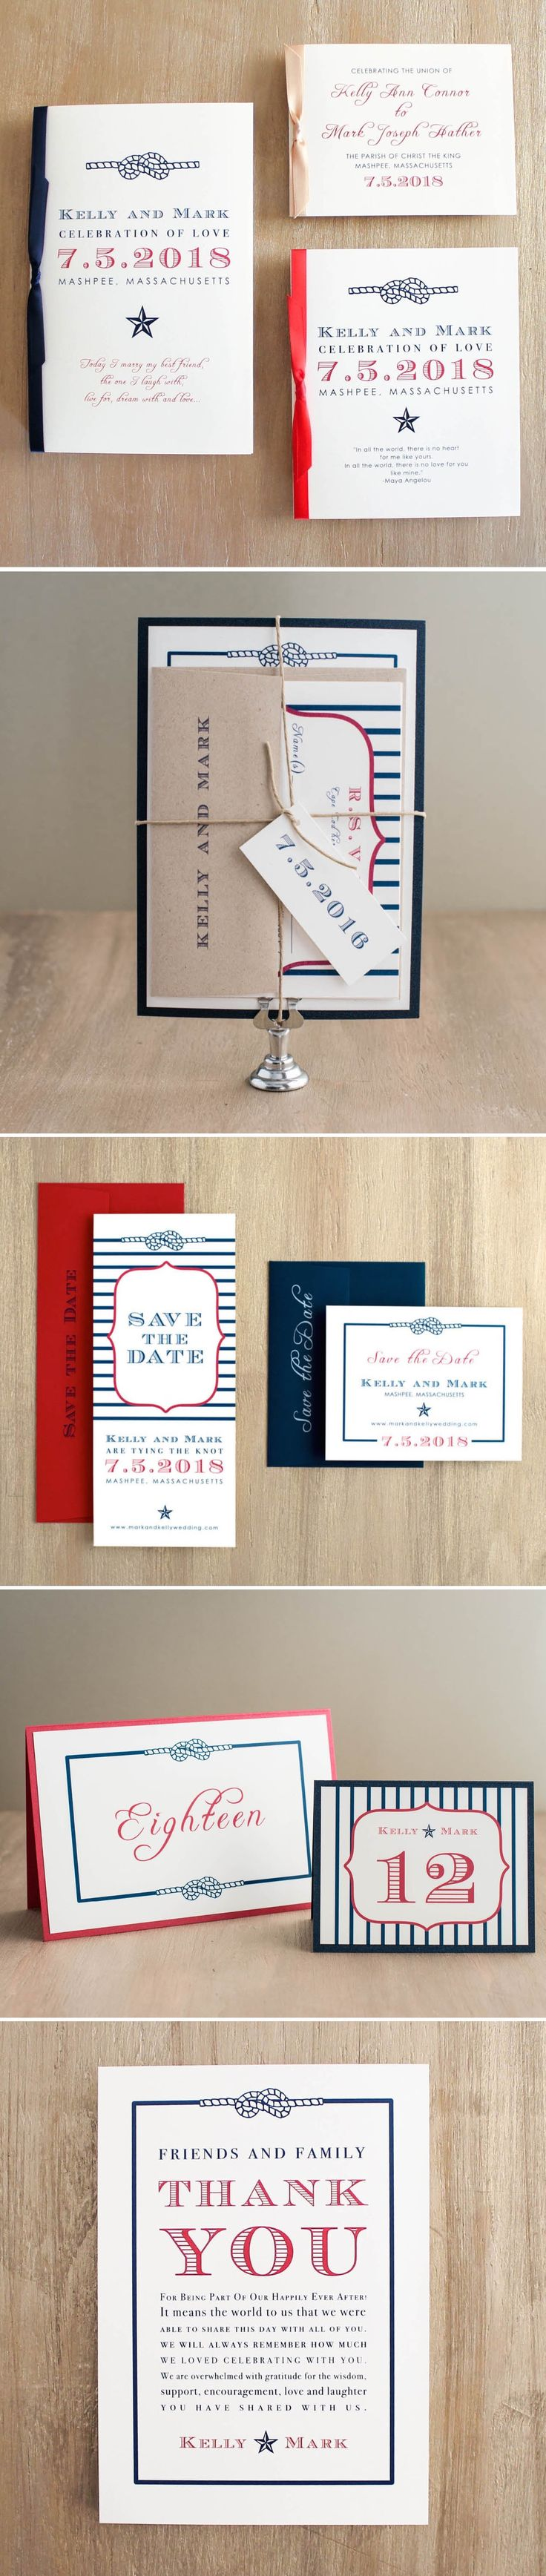 thank you note for wedding gift sample%0A Patrioticinspired wedding invitation  save the dates  ceremony programs   table numbers and thank you cards  of July Wedding